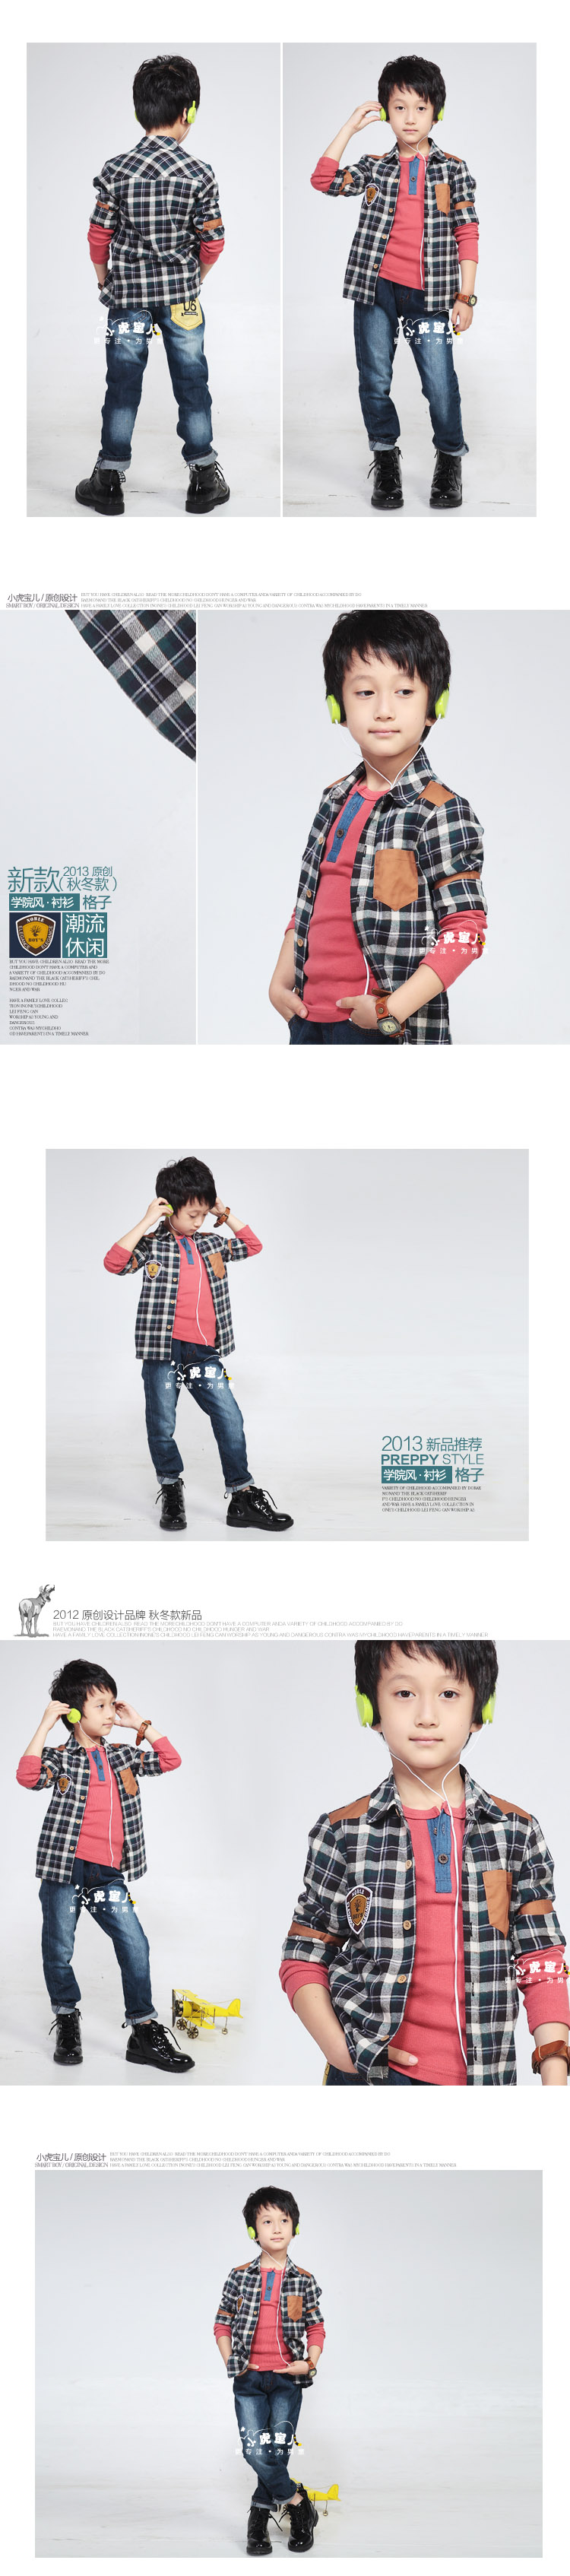 Tiger Baby Tigers treasure child with cotton stitching autumn children's shirts boys long sleeve Plaid Shirt new College wind